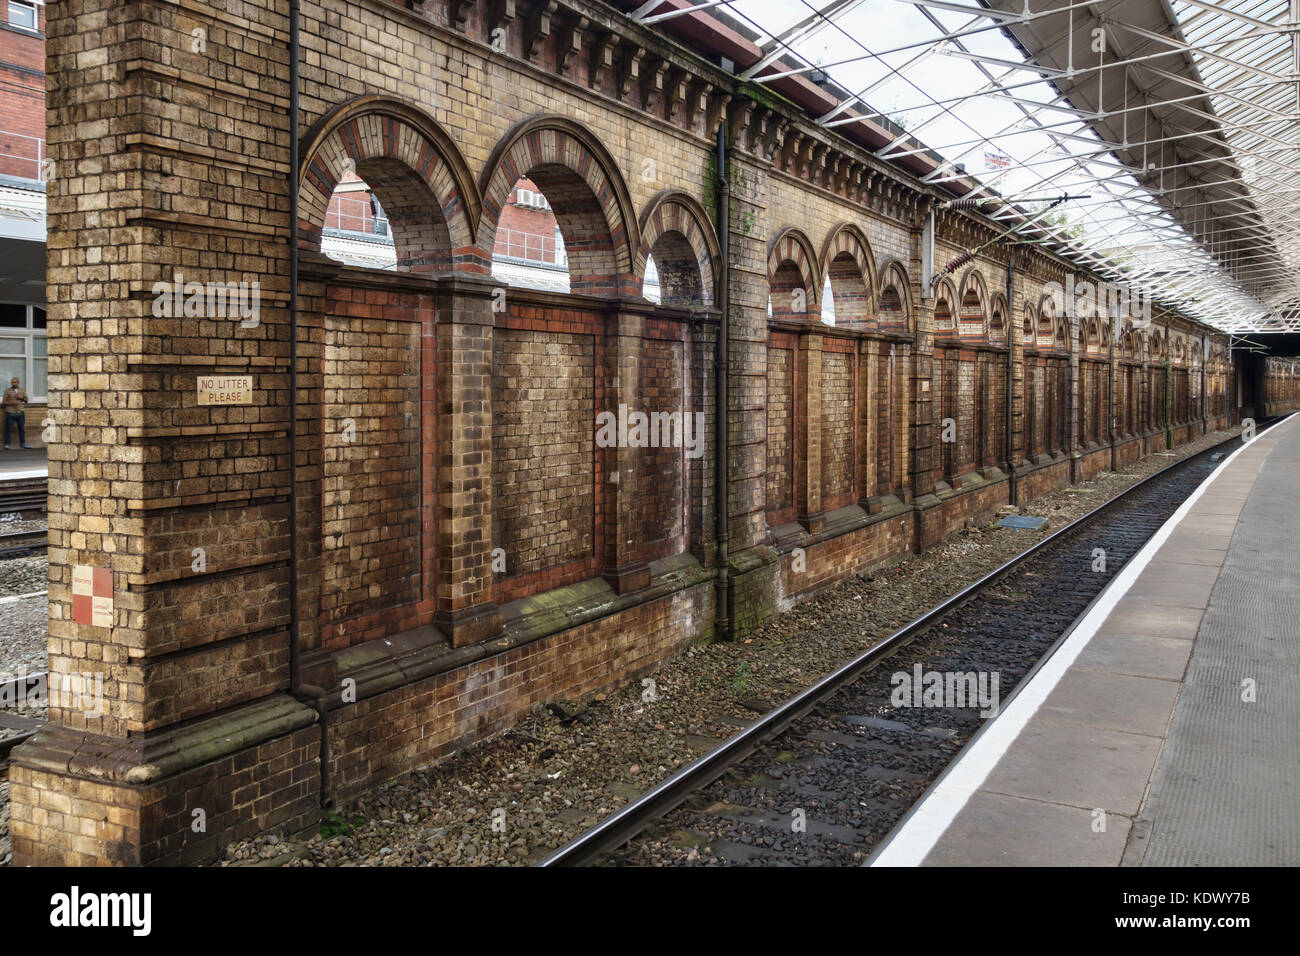 Crewe railway station, Cheshire, UK. First opened in 1837. Platform 12 dates from the early 1900s - Stock Image